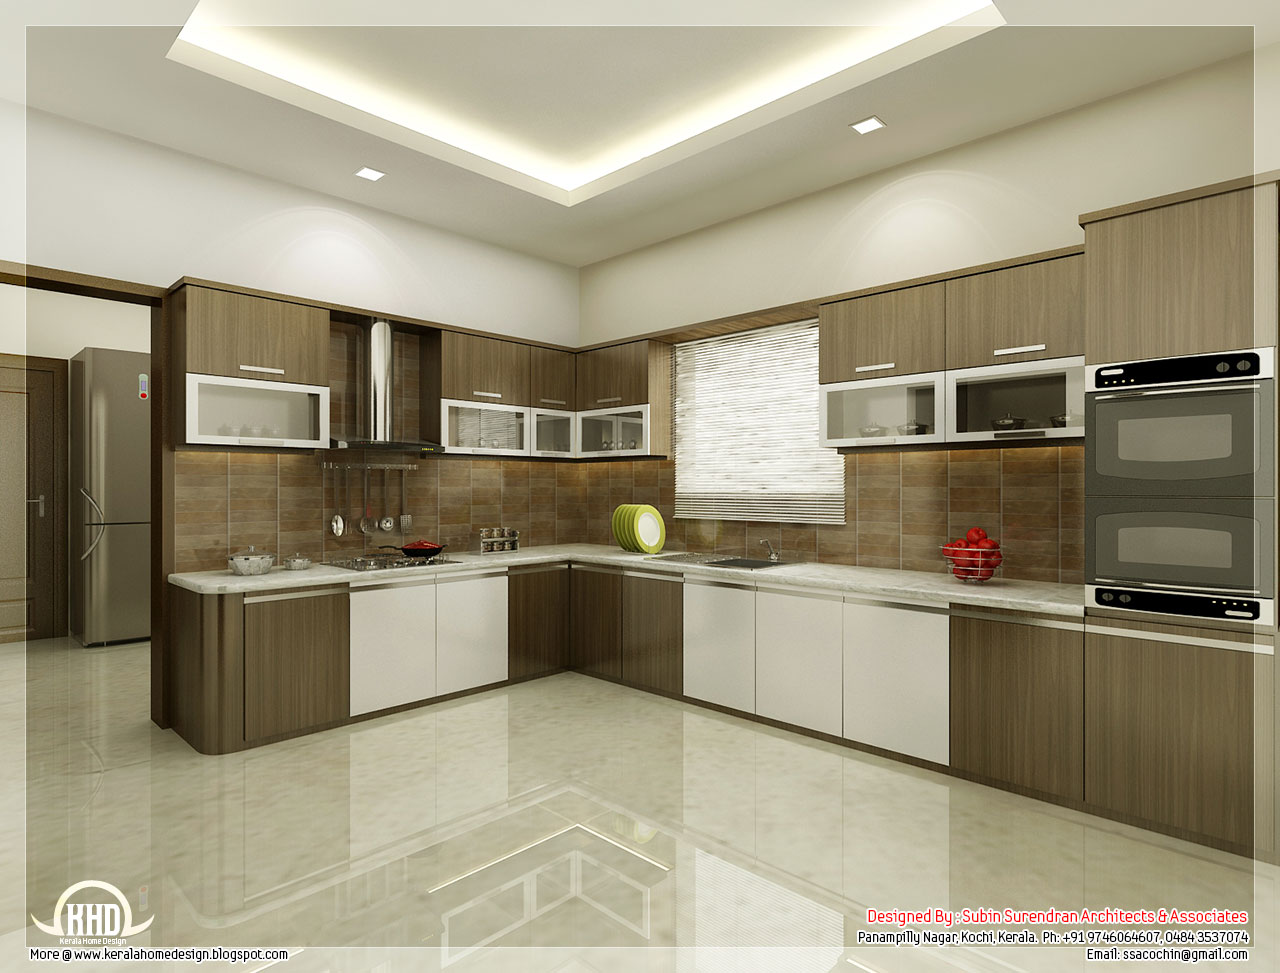 kitchen interior design - Interior Kitchen Design